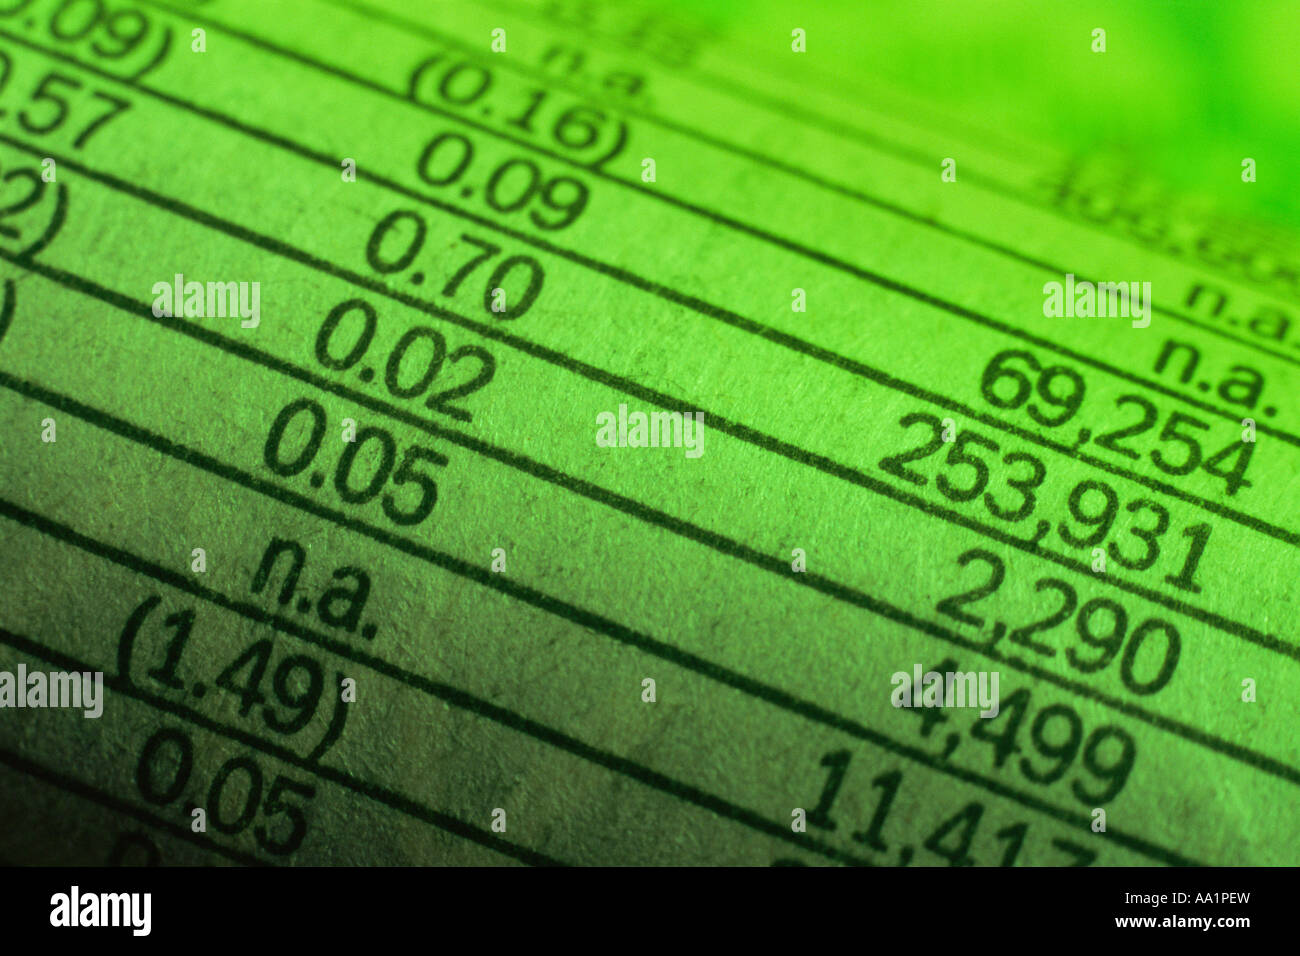 Spreadsheet Stock Photos & Spreadsheet Stock Images - Alamy